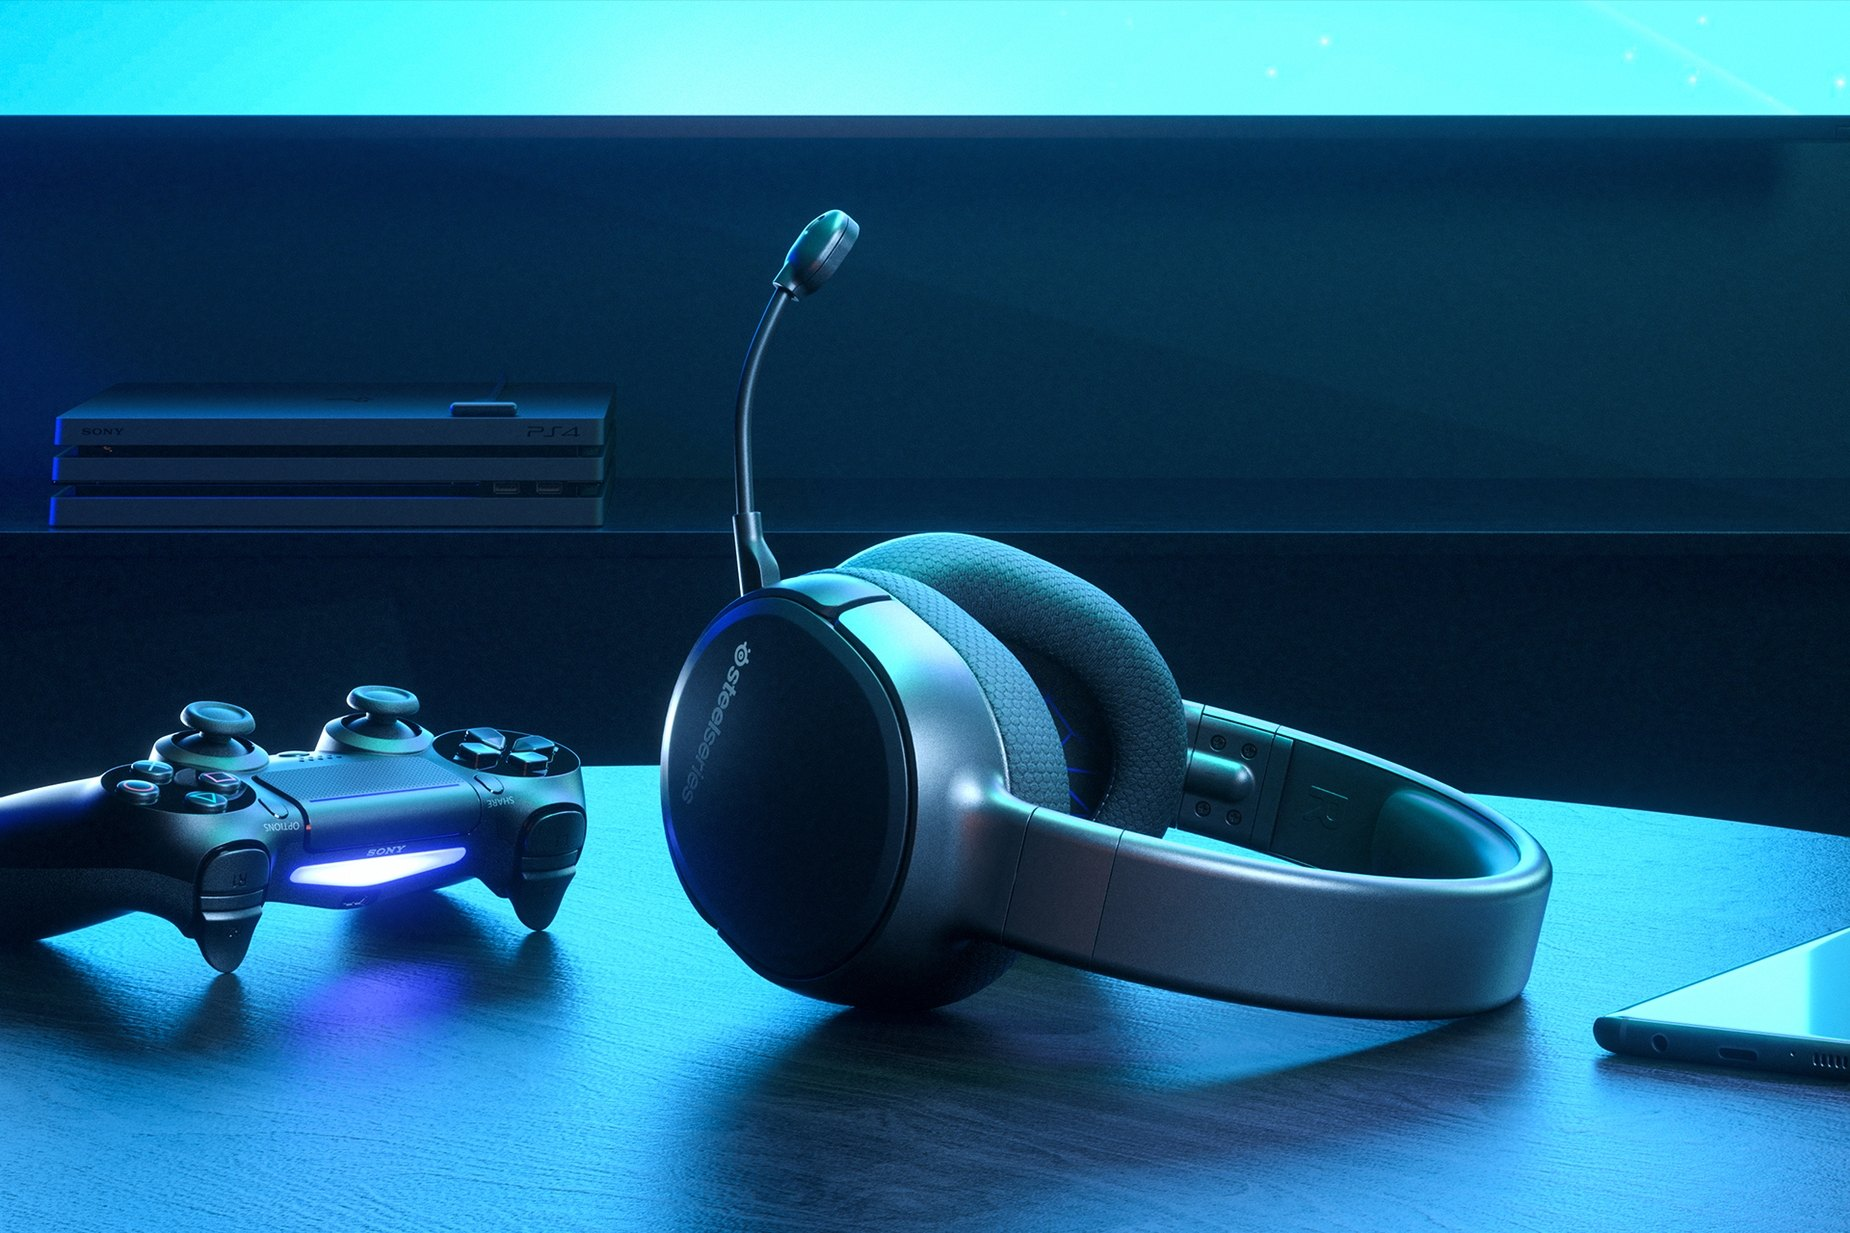 Arctis 1 Wireless gaming headset on table with a Playstation controller and a PS4 in the background